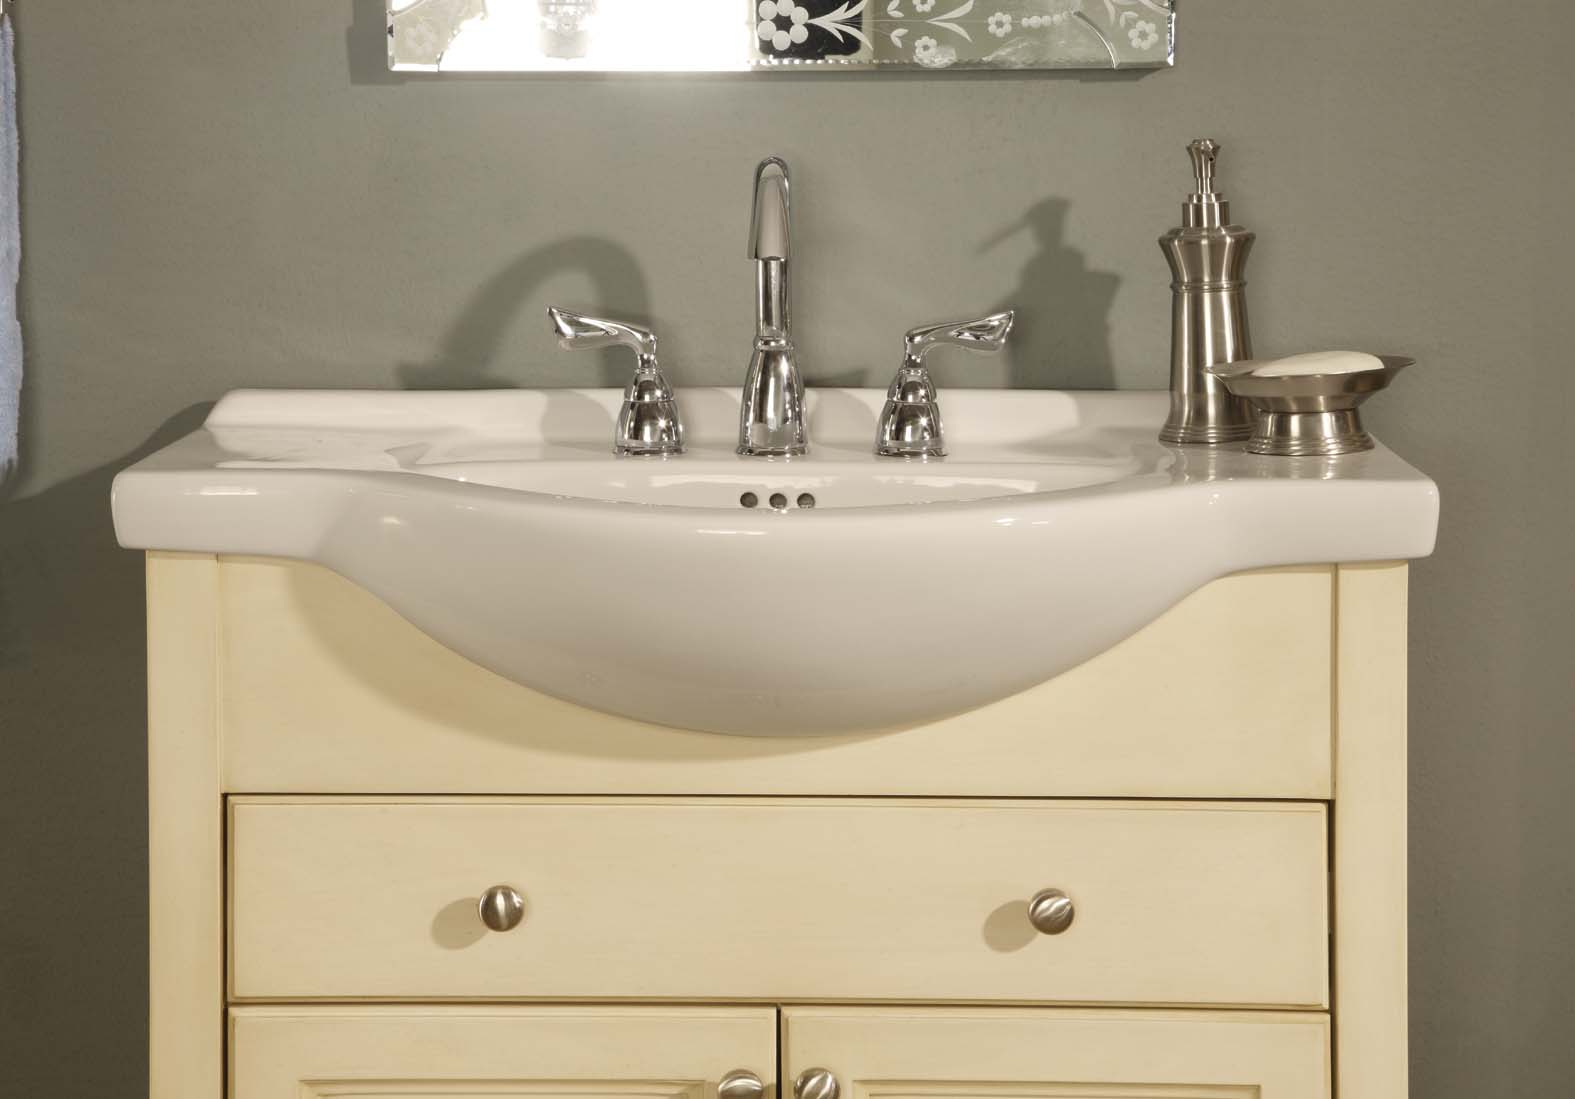 19 Shallow Depth Bathroom Vanity Shallow Depth Bathroom throughout dimensions 1575 X 1099